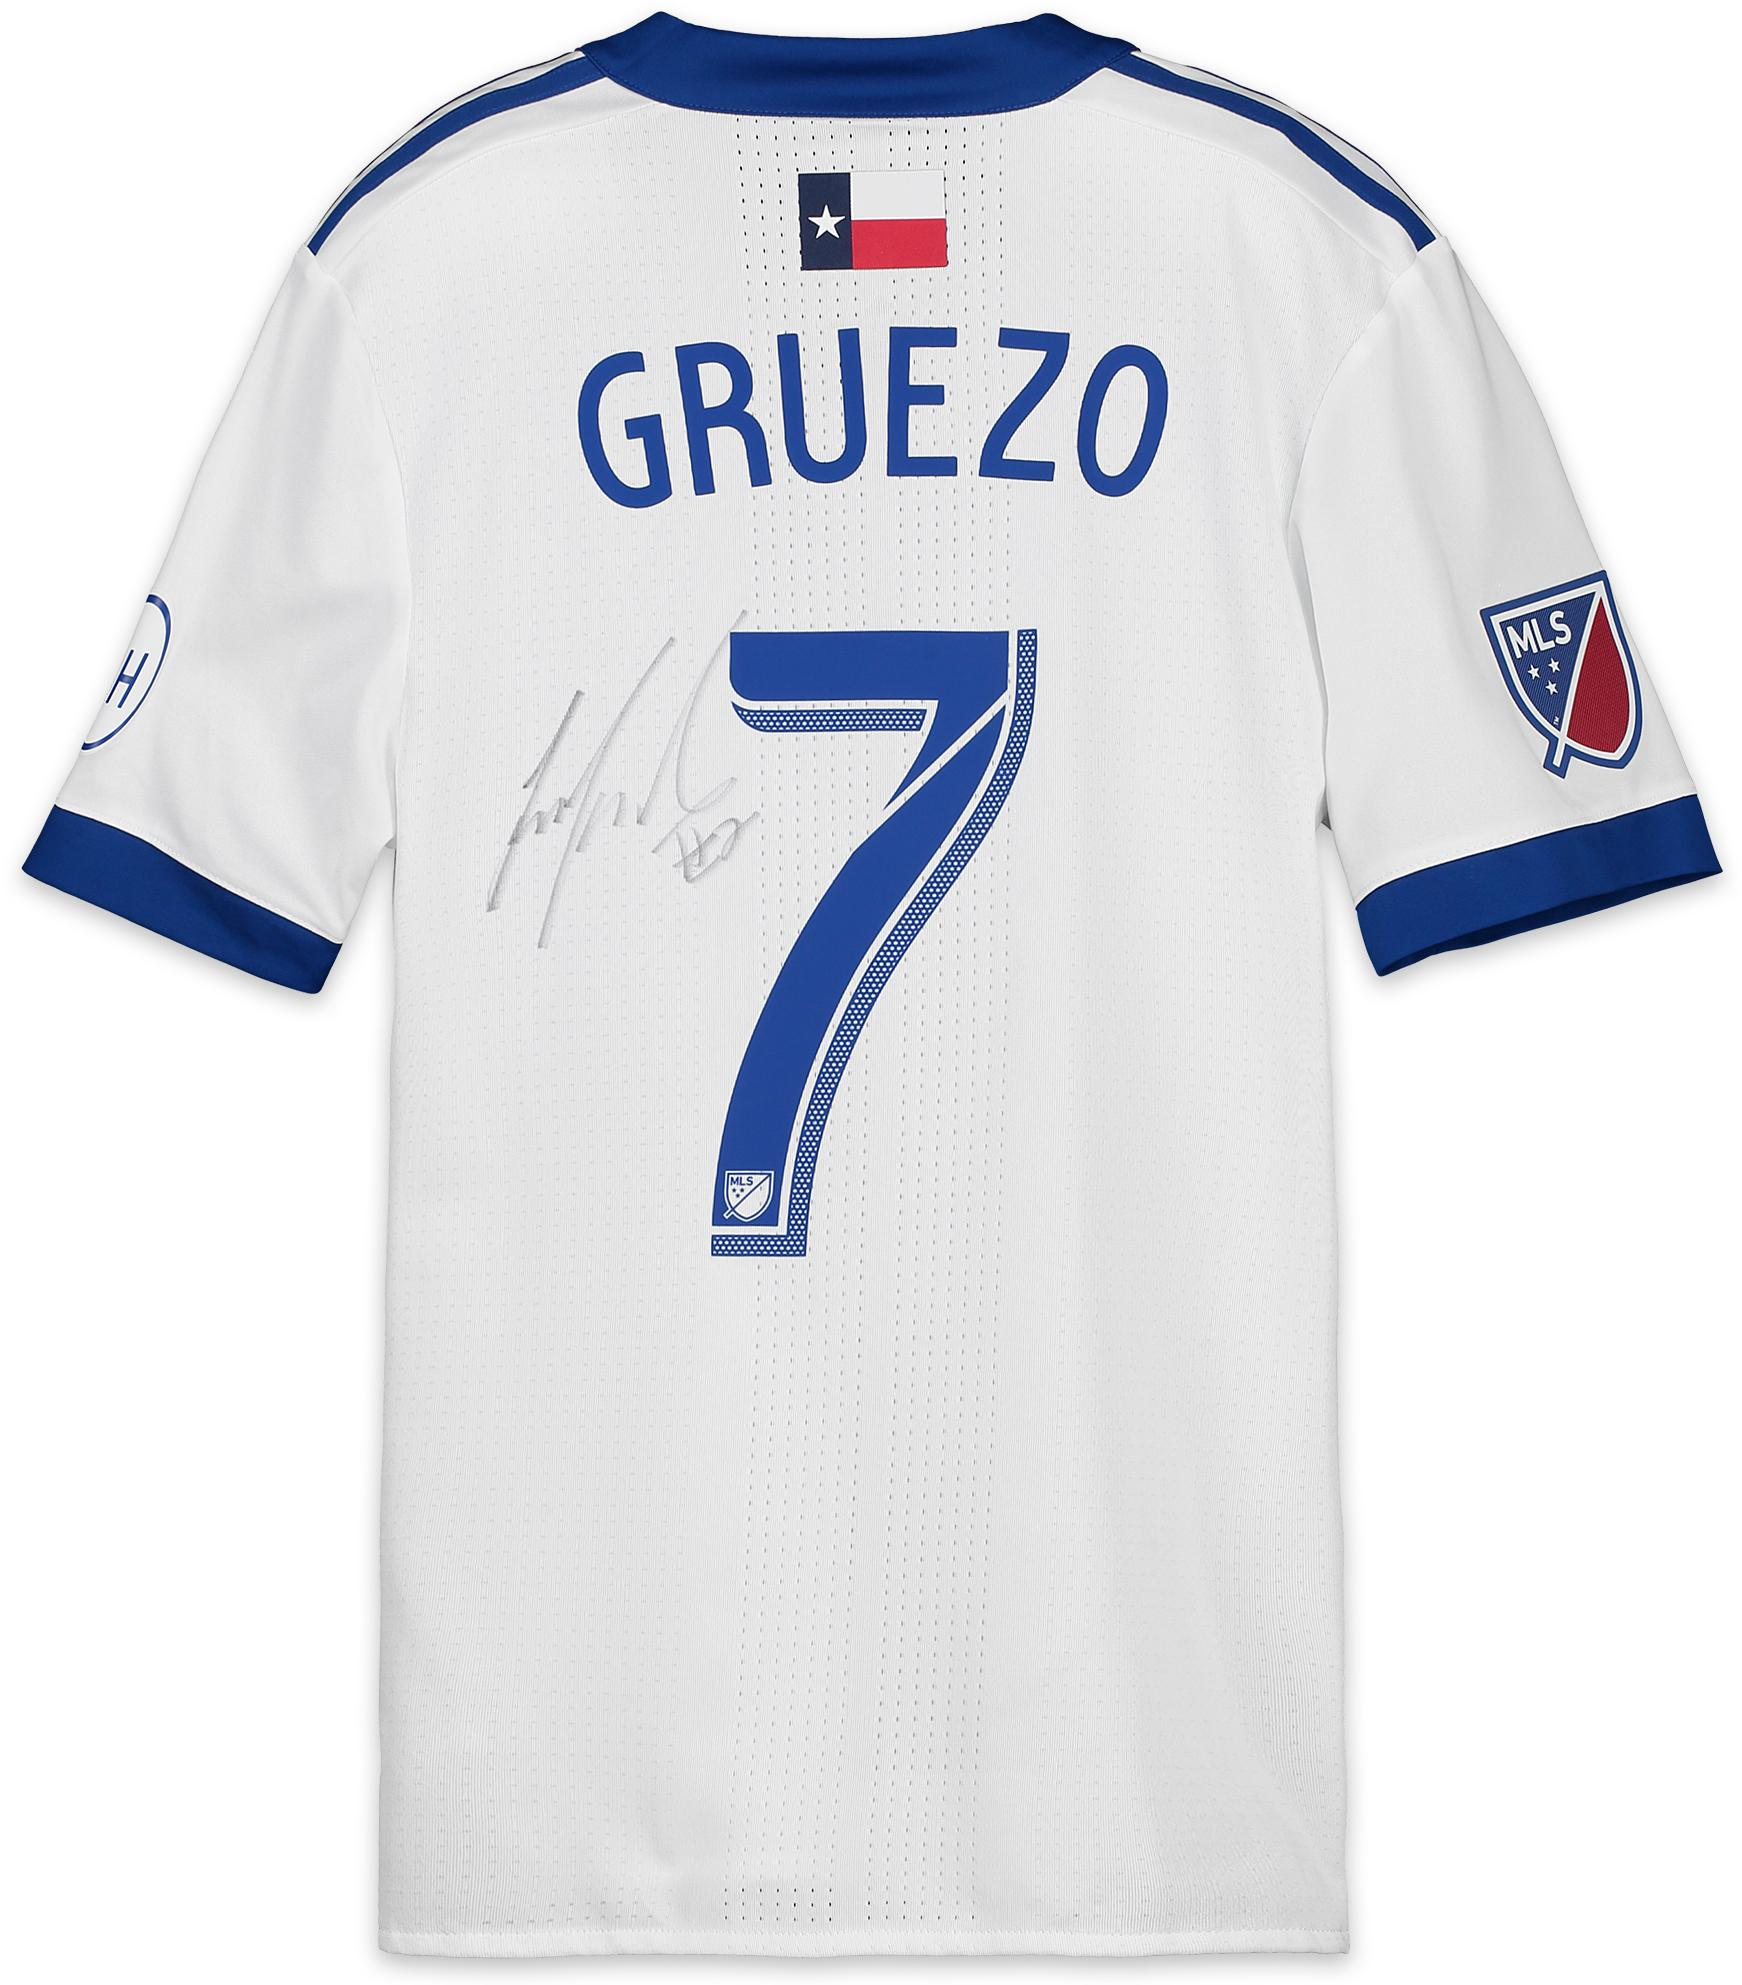 wholesale dealer edd78 94ae6 Carlos Gruezo FC Dallas Autographed Match-Used Blue and White #7 Jersey vs.  Toronto FC on May 25, 2018 - Fanatics Authentic Certified